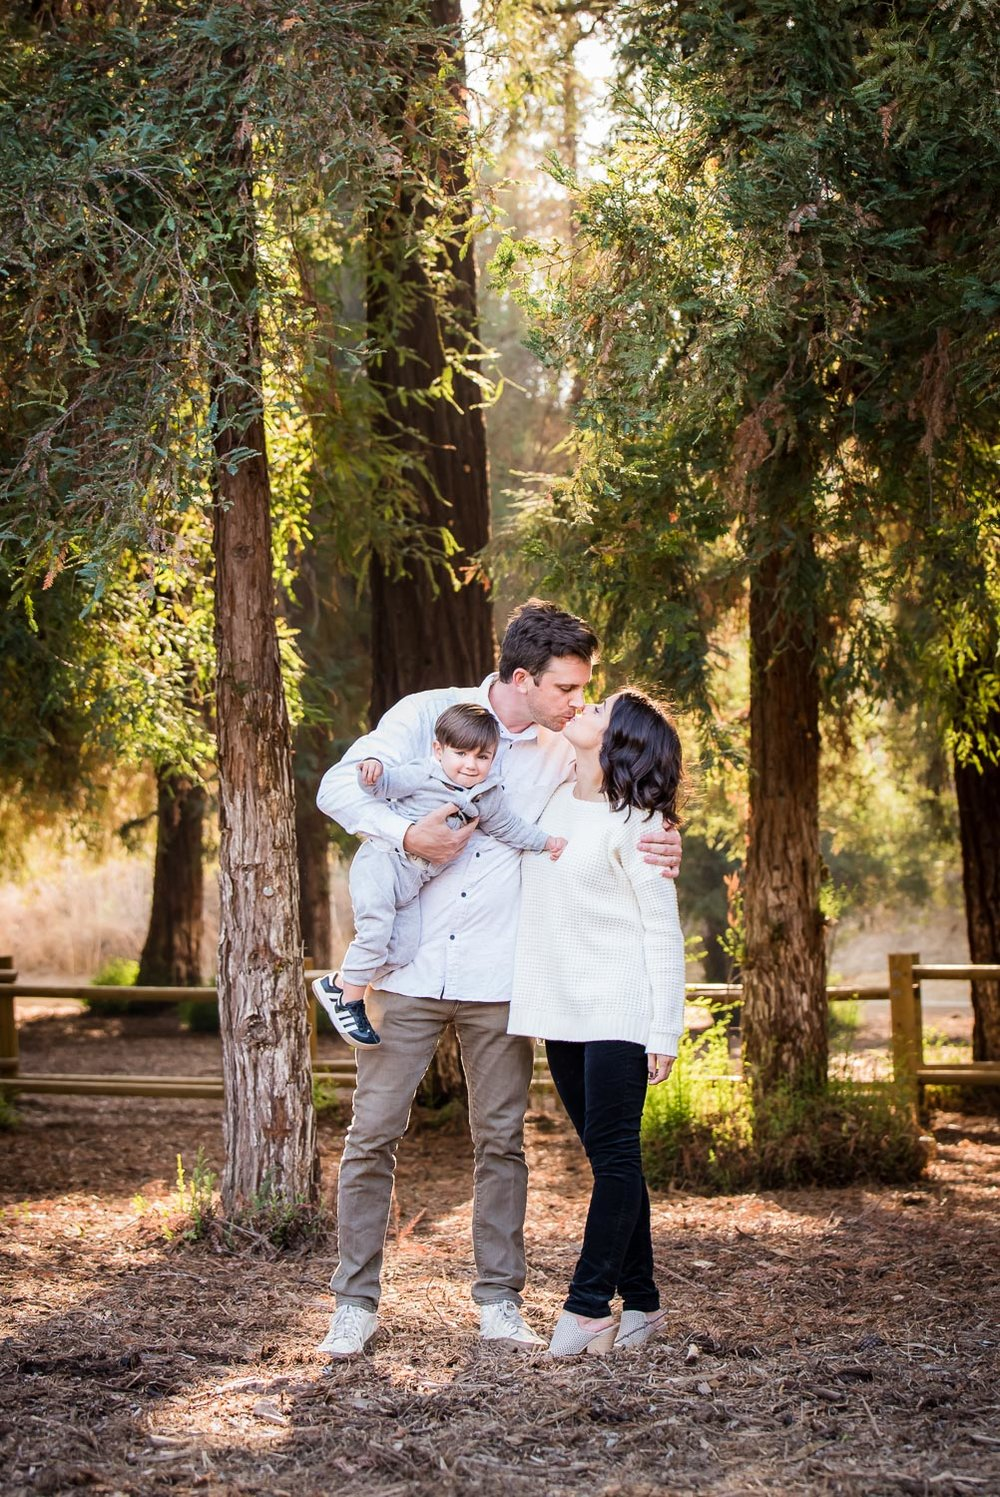 mini_fall_family_session_orange_county_irvine_newport_costa_mesa_children_child_photos_carbon_canyon  (3).jpg